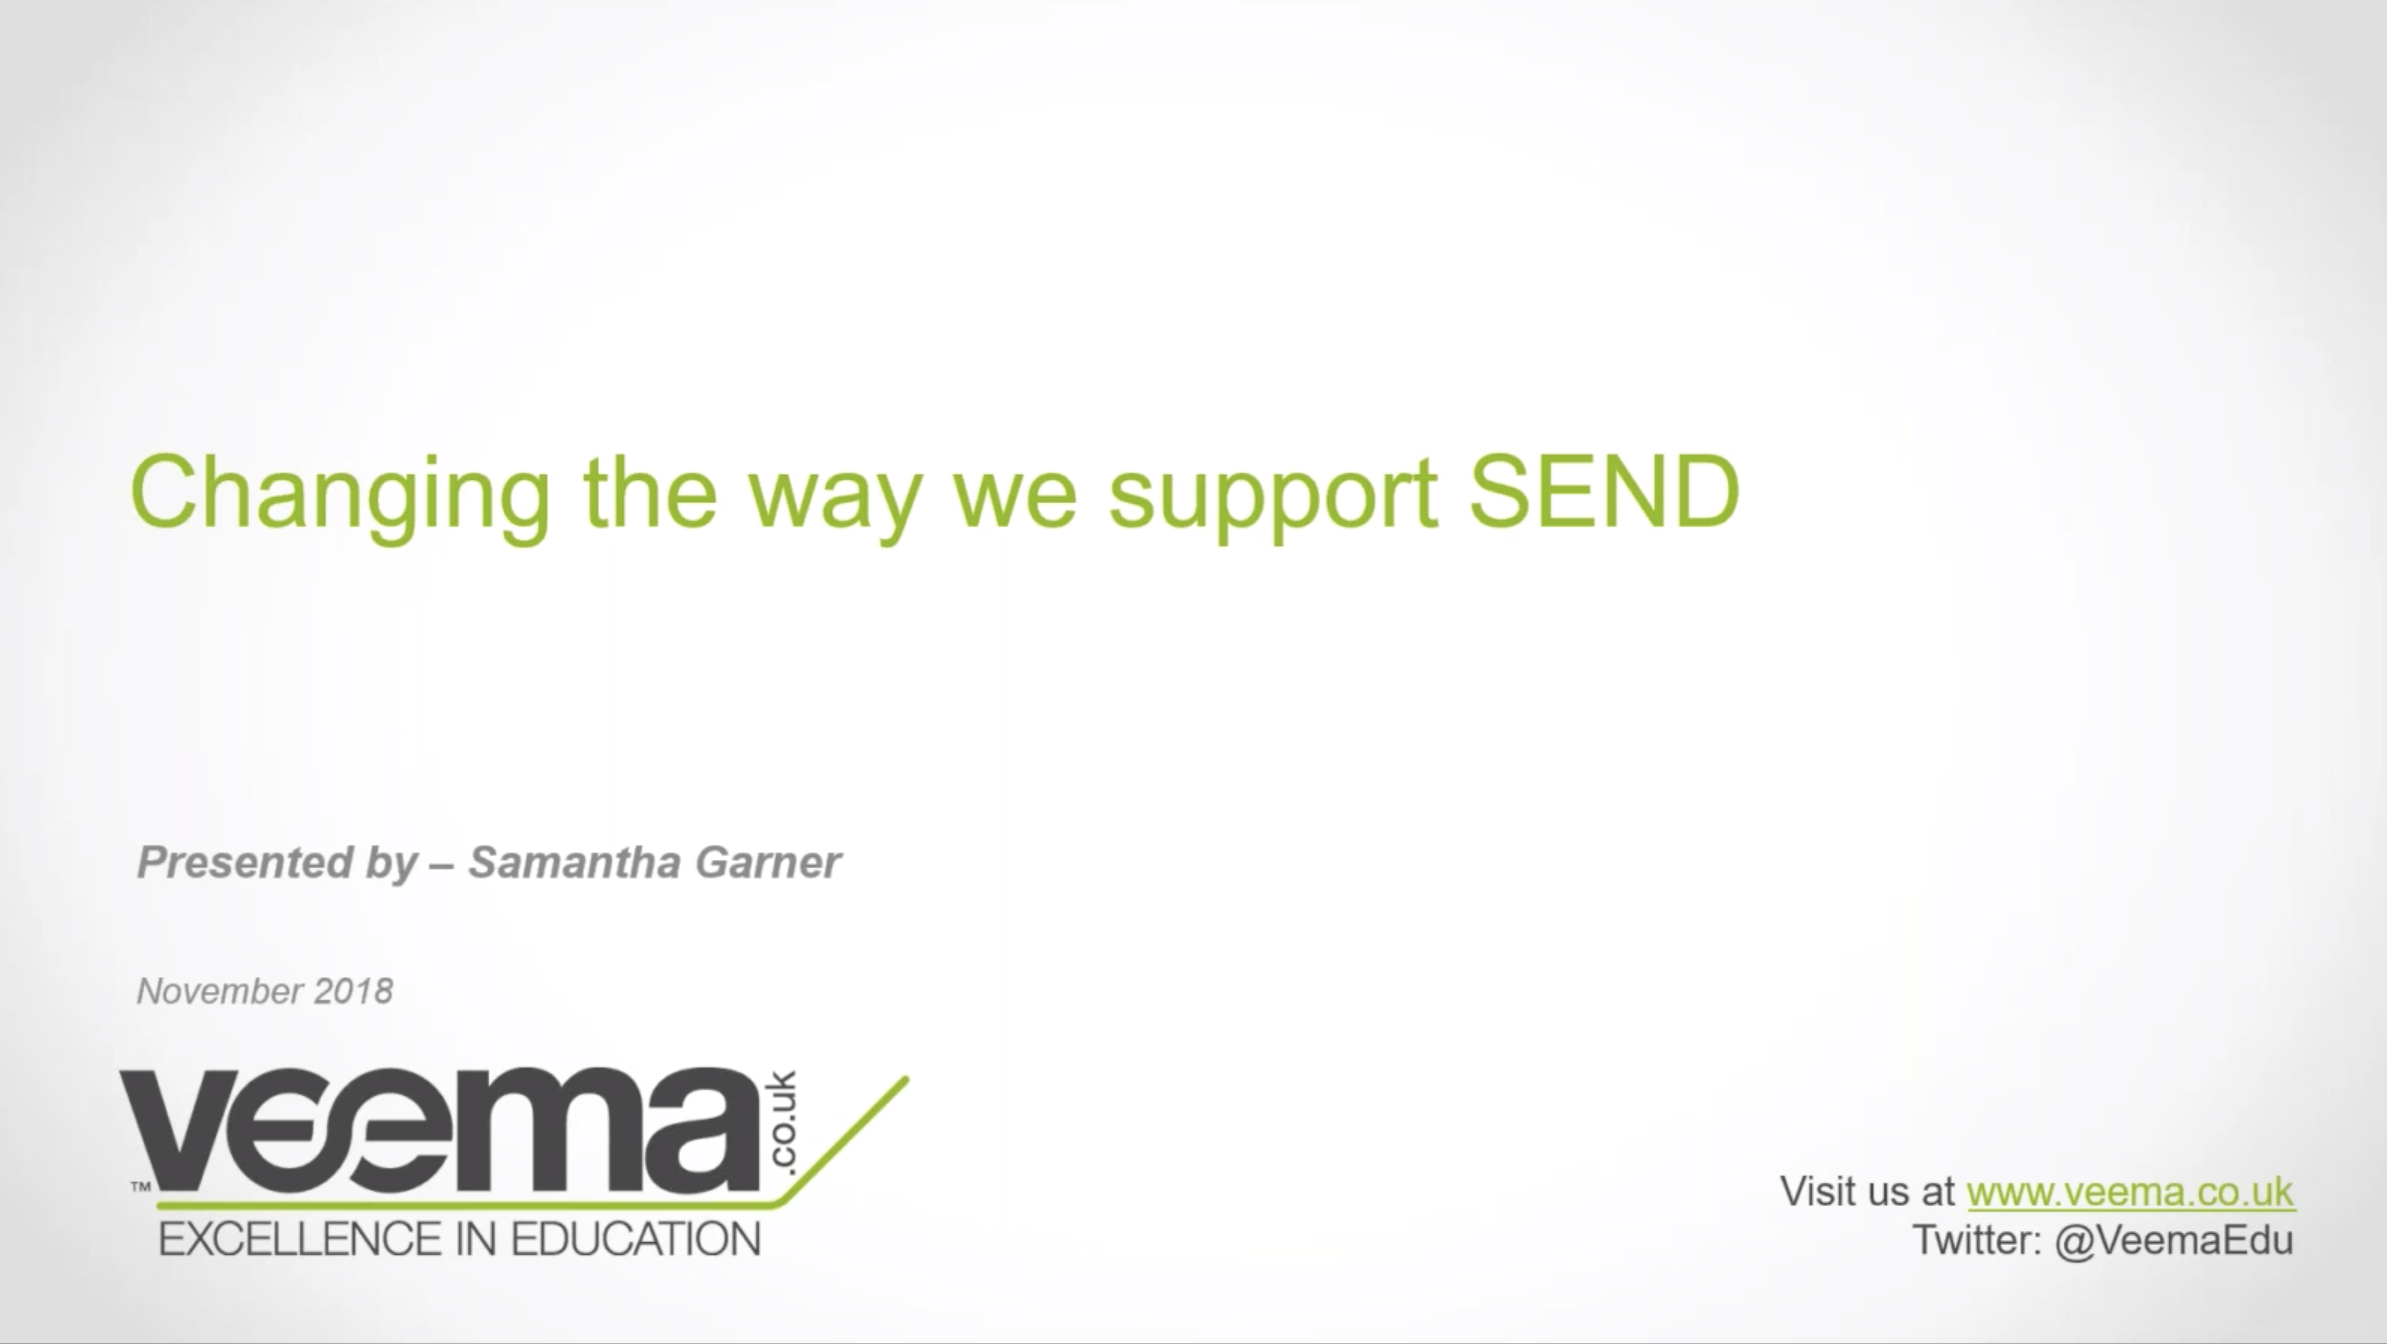 Changing the way we support SEND